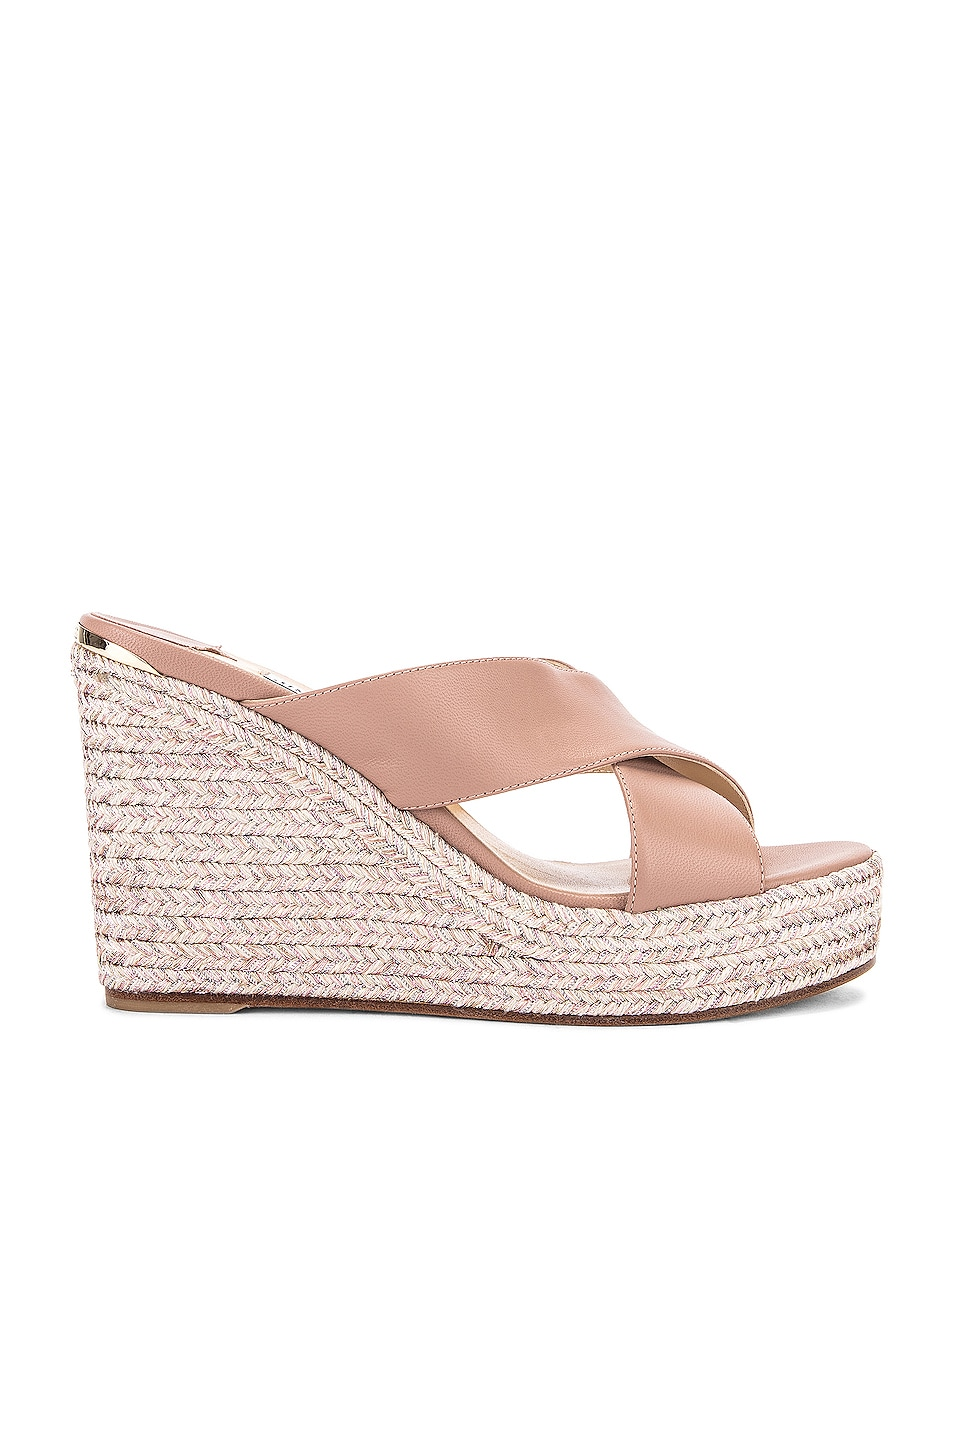 Image 1 of Jimmy Choo Dovina 100 Wedge in Ballet Pink